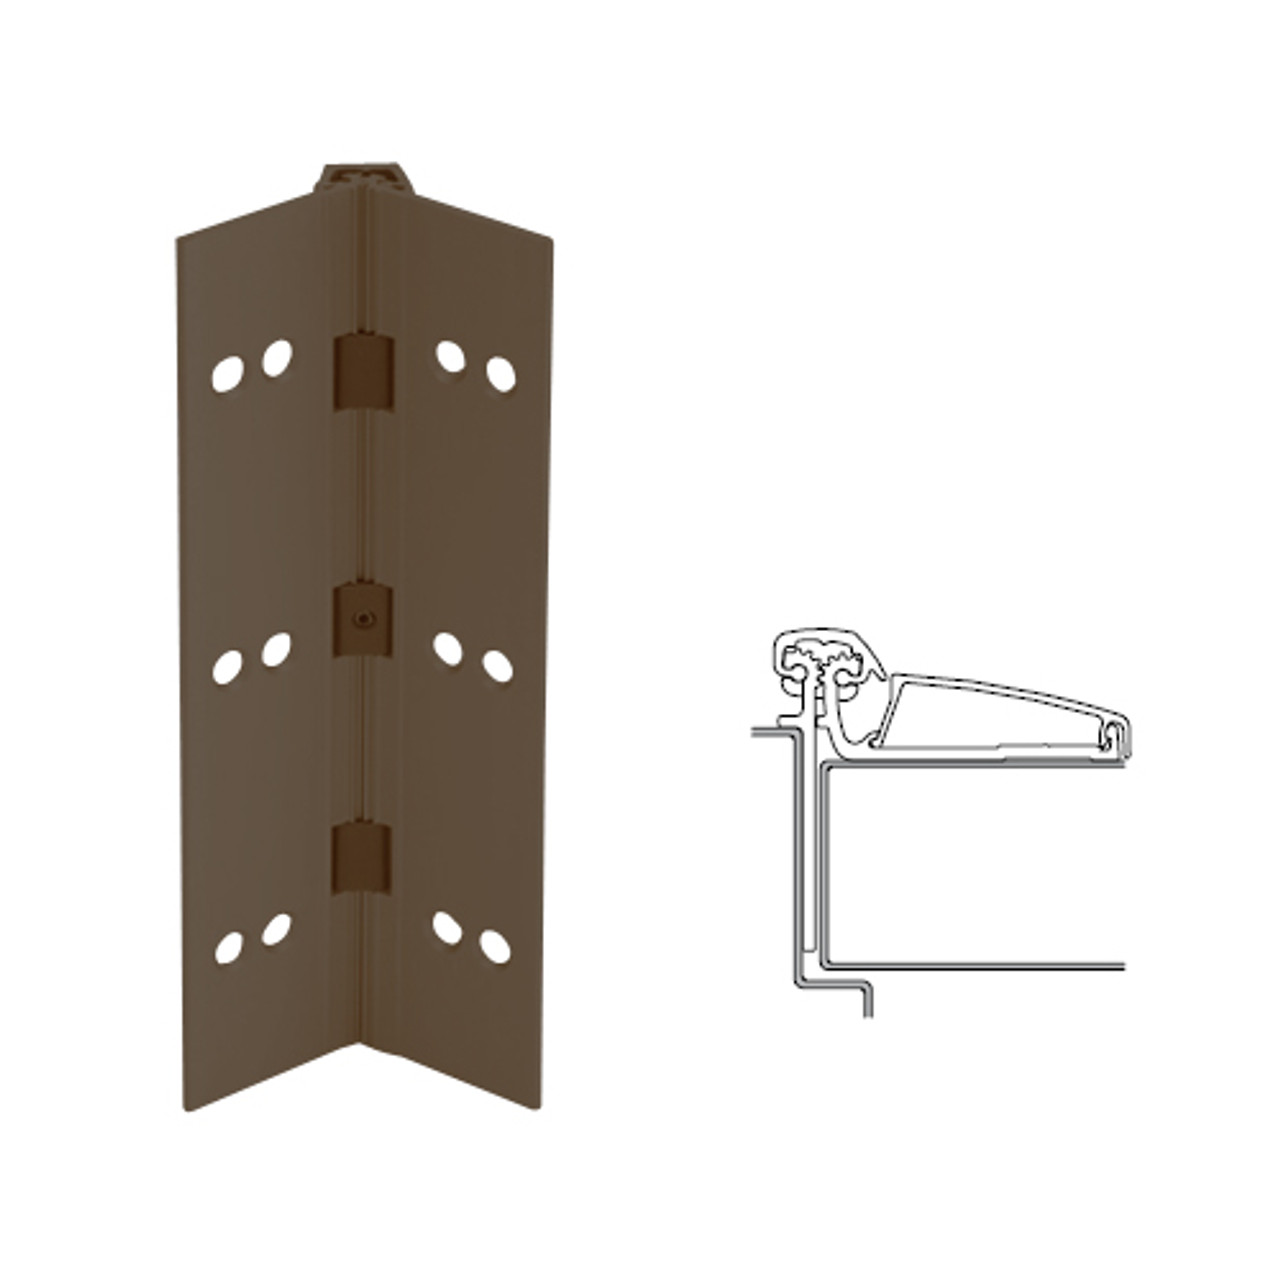 046XY-313AN-120 IVES Adjustable Half Surface Continuous Geared Hinges in Dark Bronze Anodized